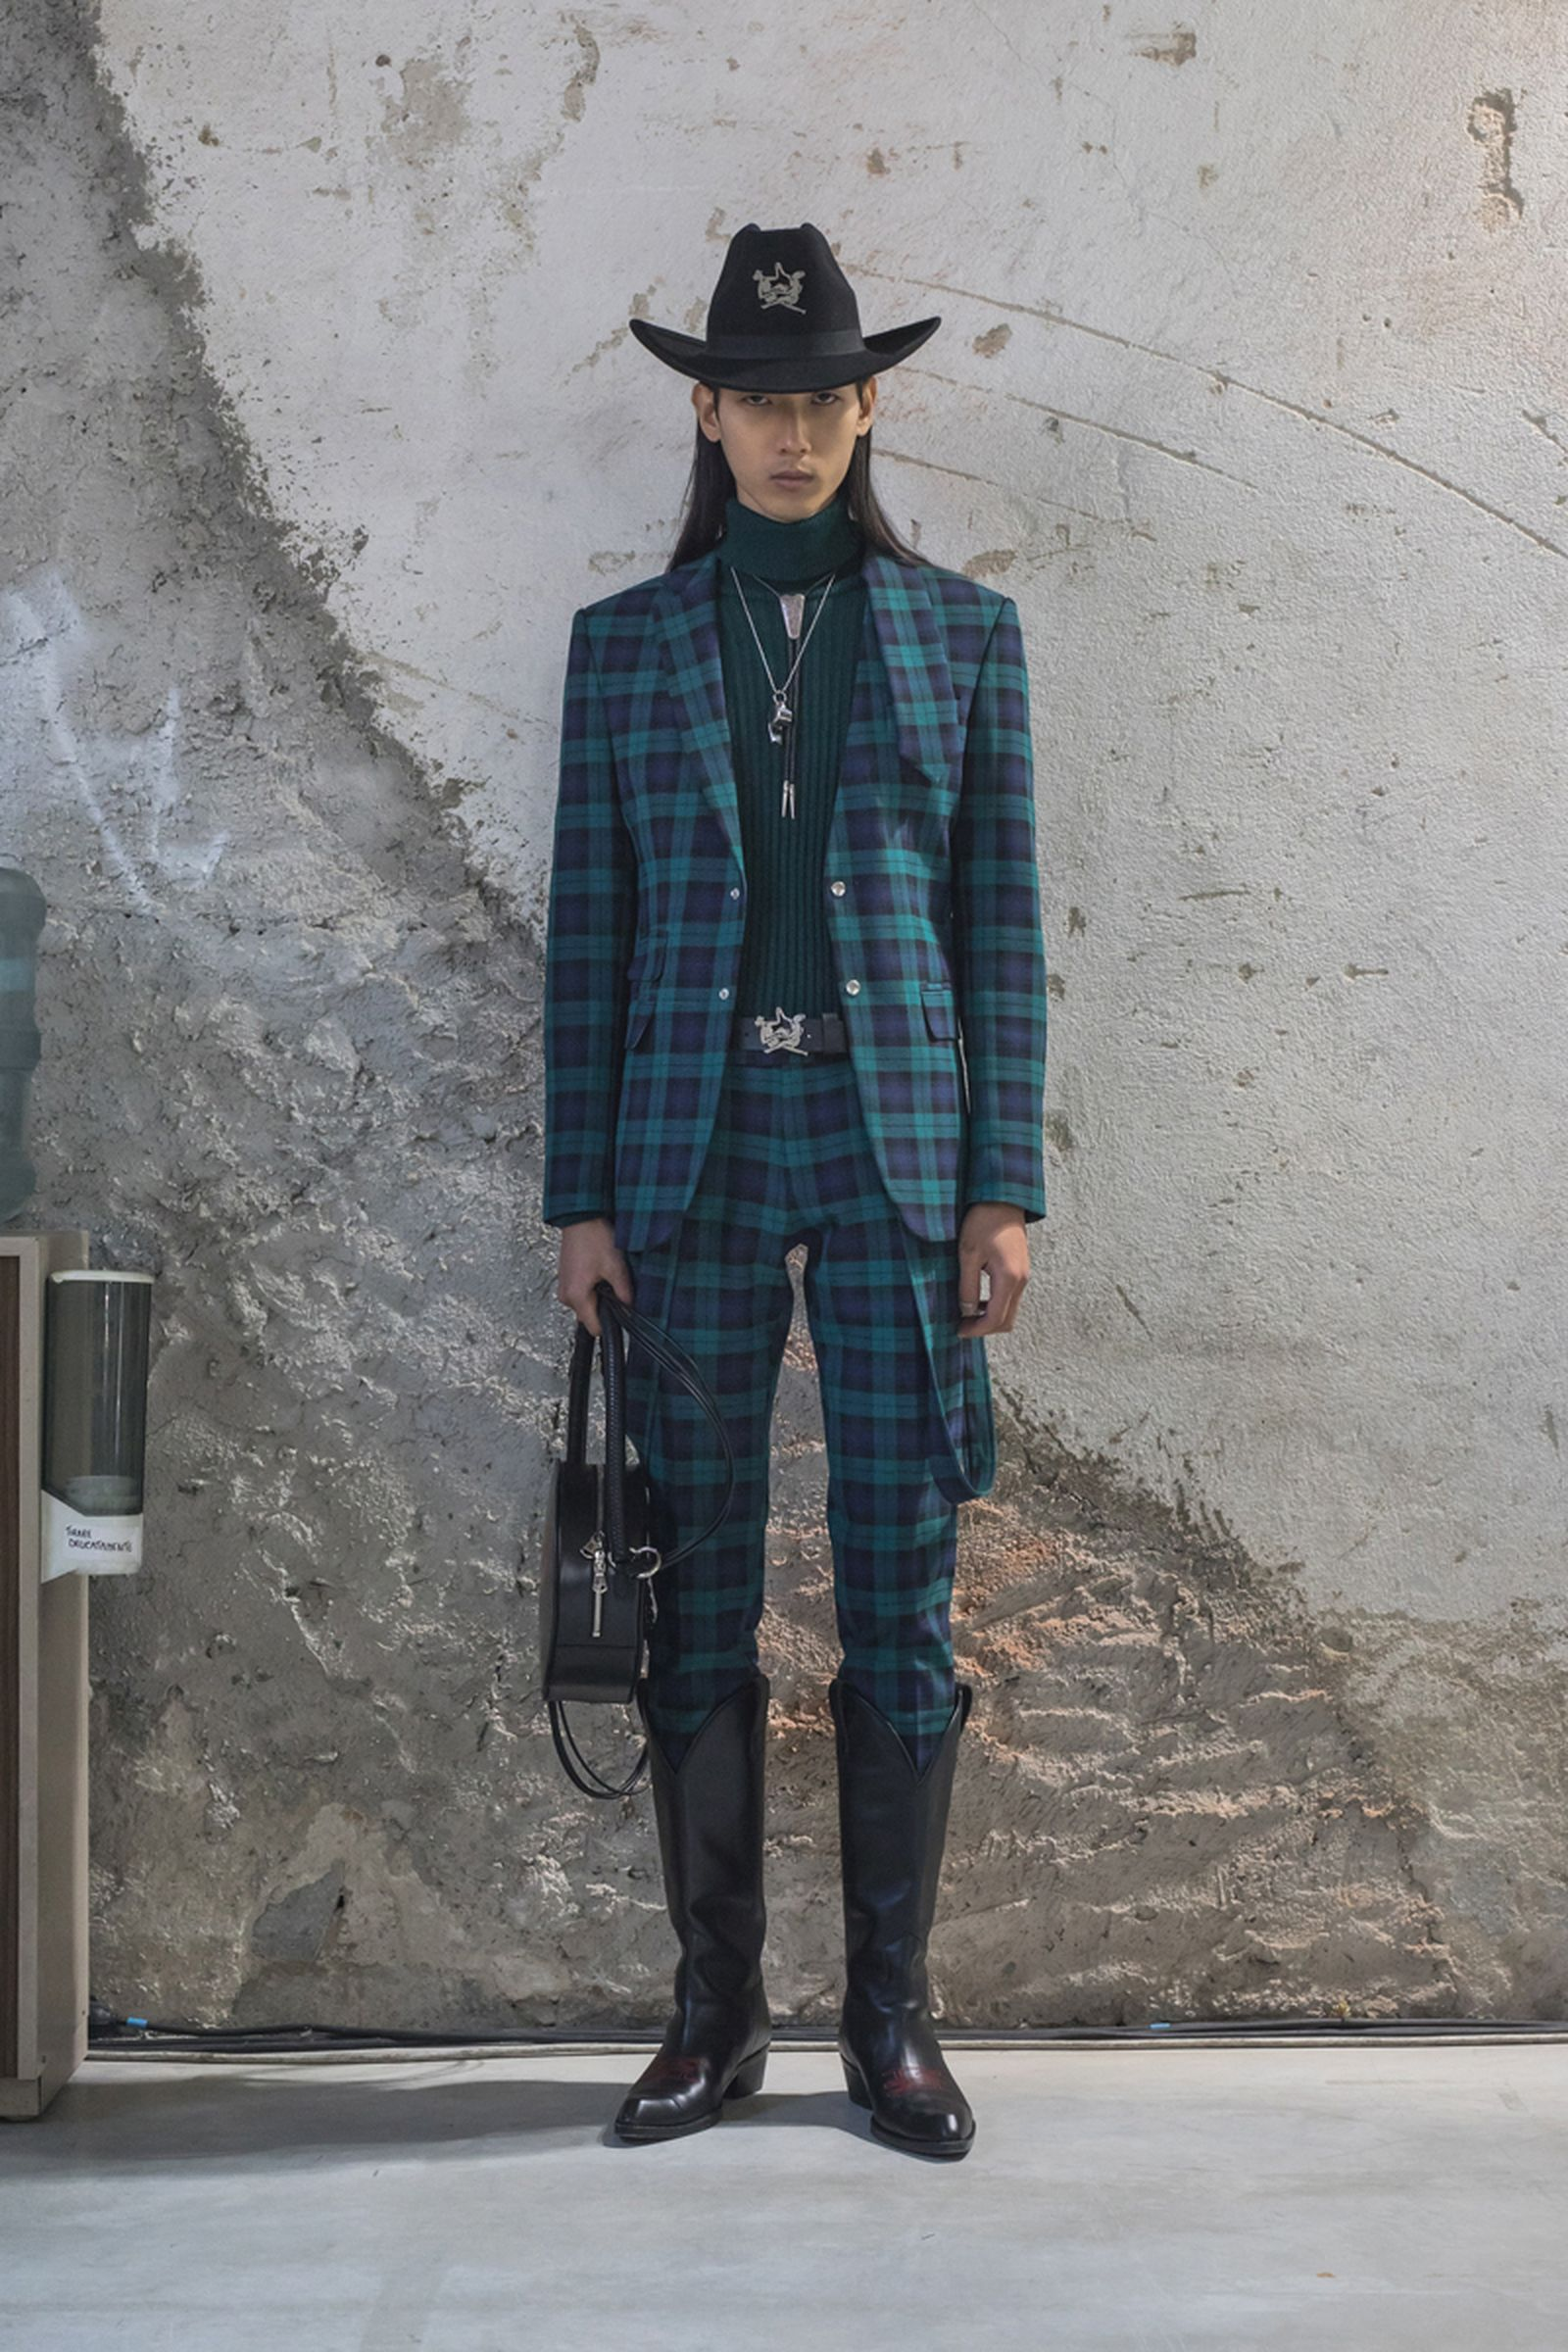 thebe-magugus-menswear-debut-at-pitti-is-everything-we-hoped-it-would-be-4